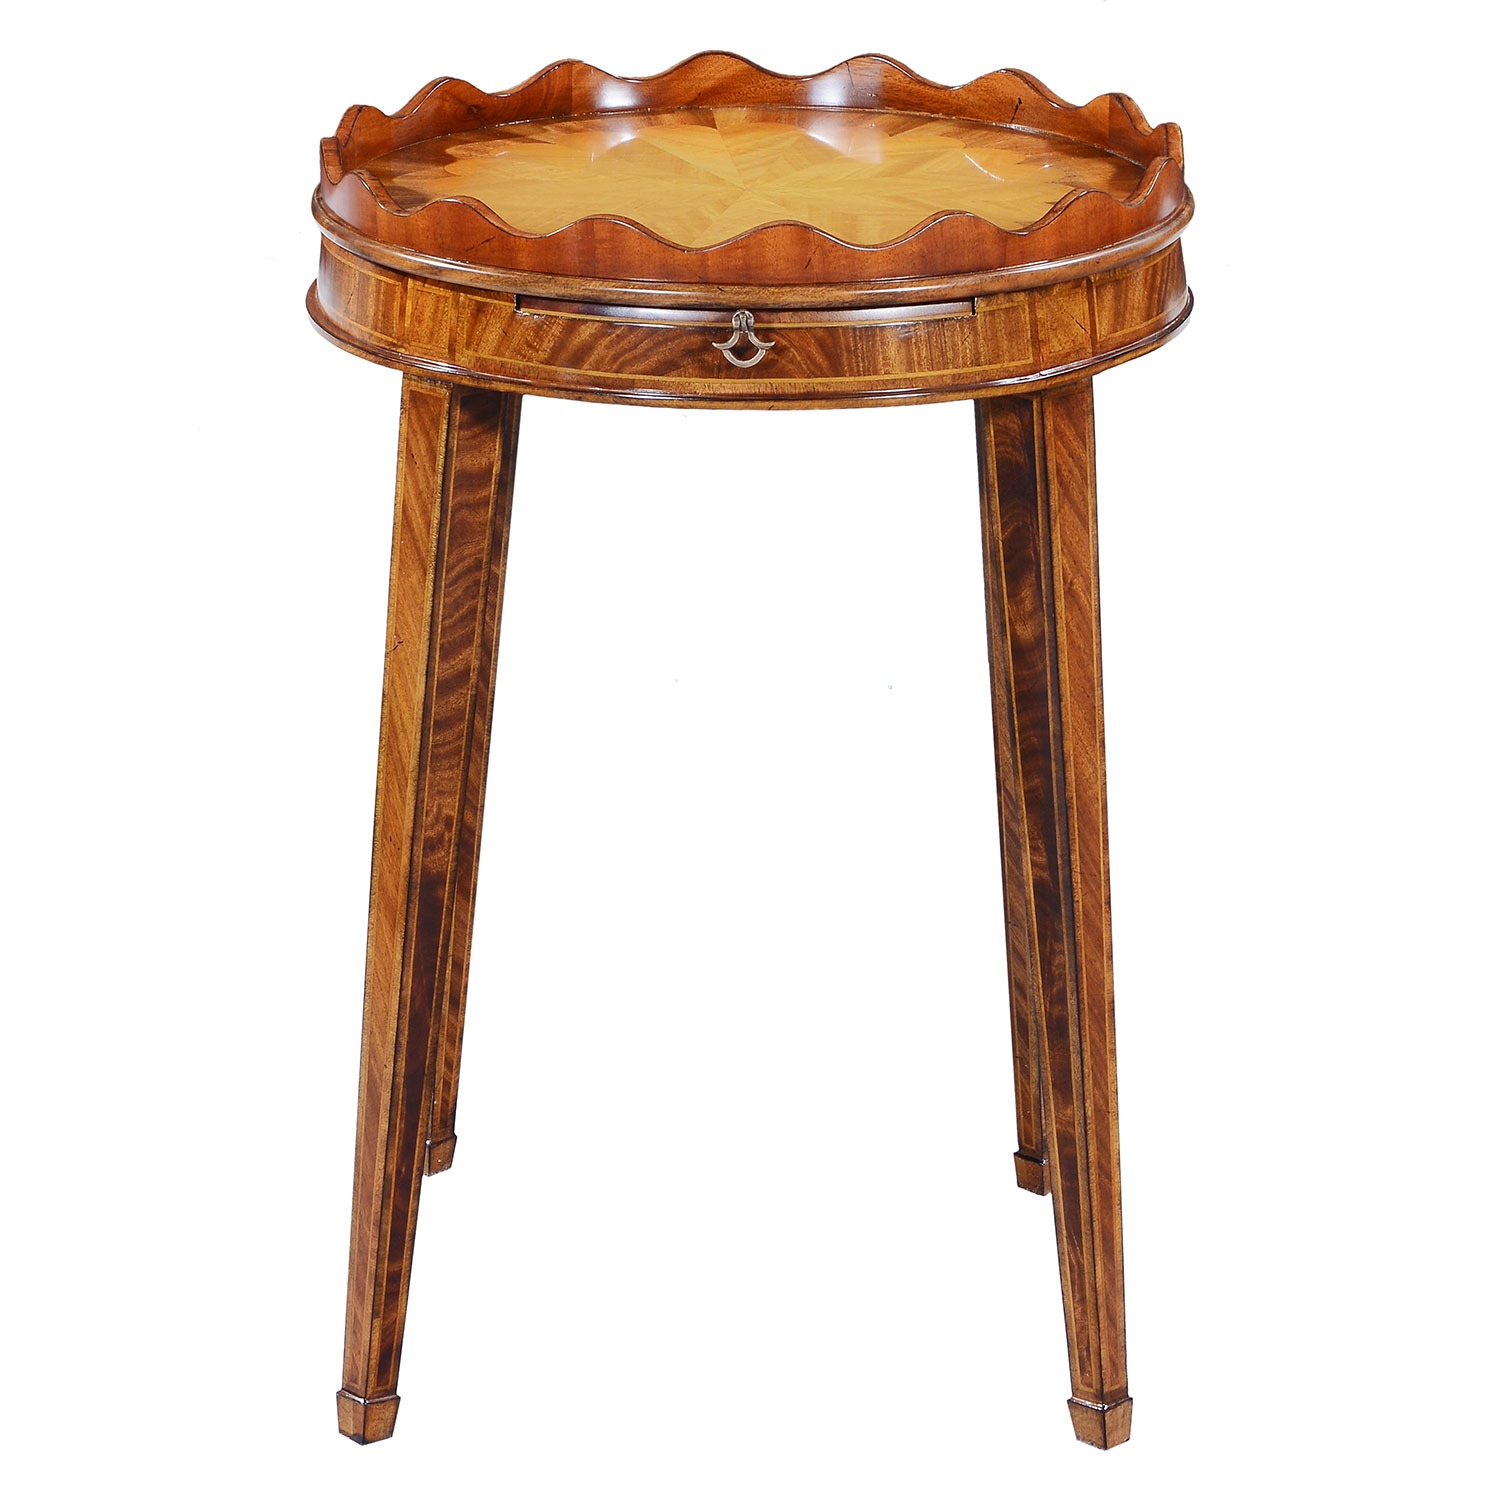 Mahogany wine table - 20in top